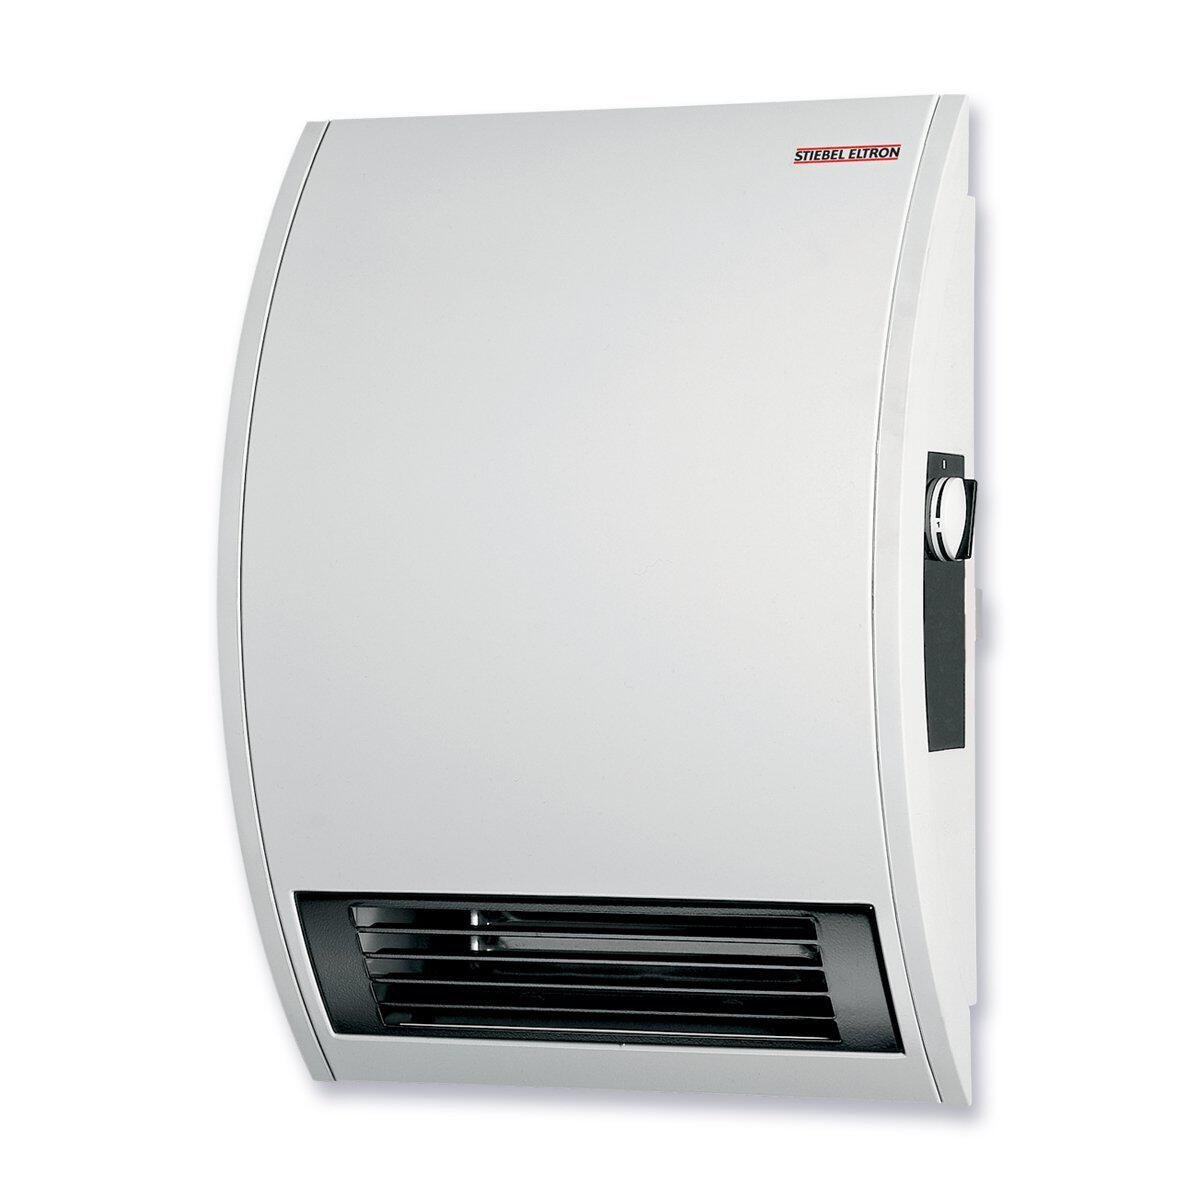 Stiebel Eltron CK 15E Wall-Mounted Fan Heaters